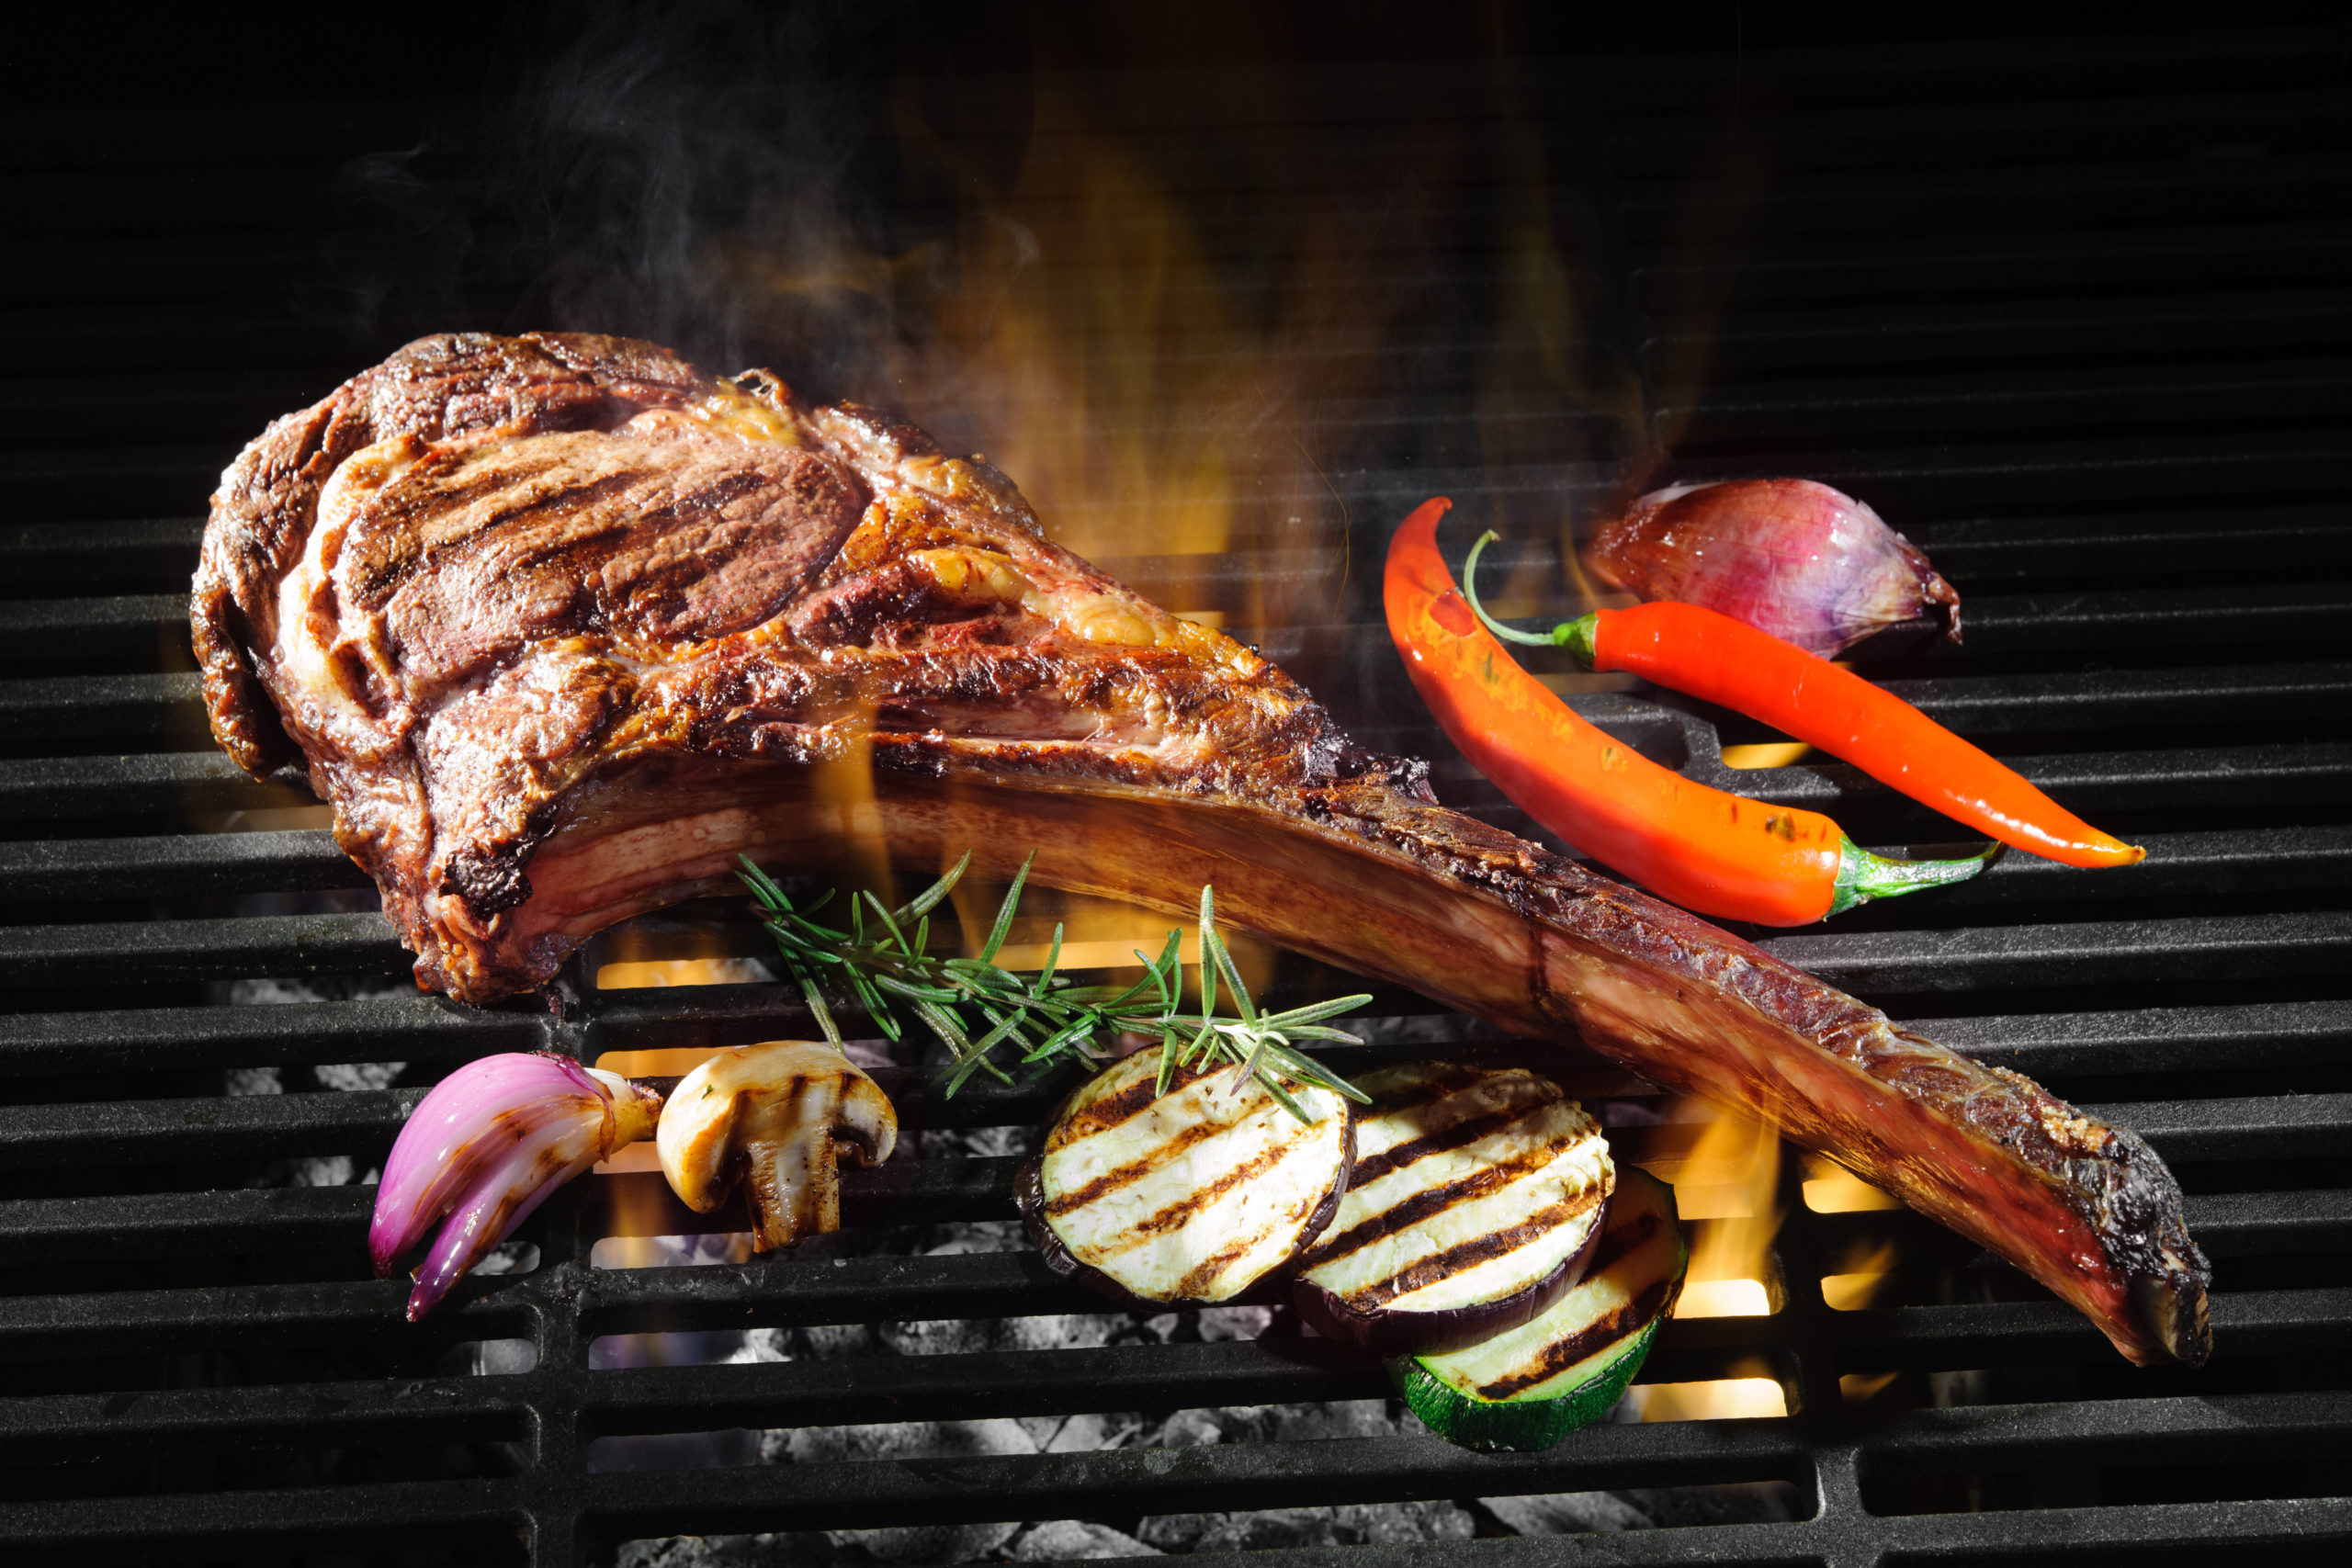 What is the best cut of meat and how do you prepare it? We talked to a local expert!